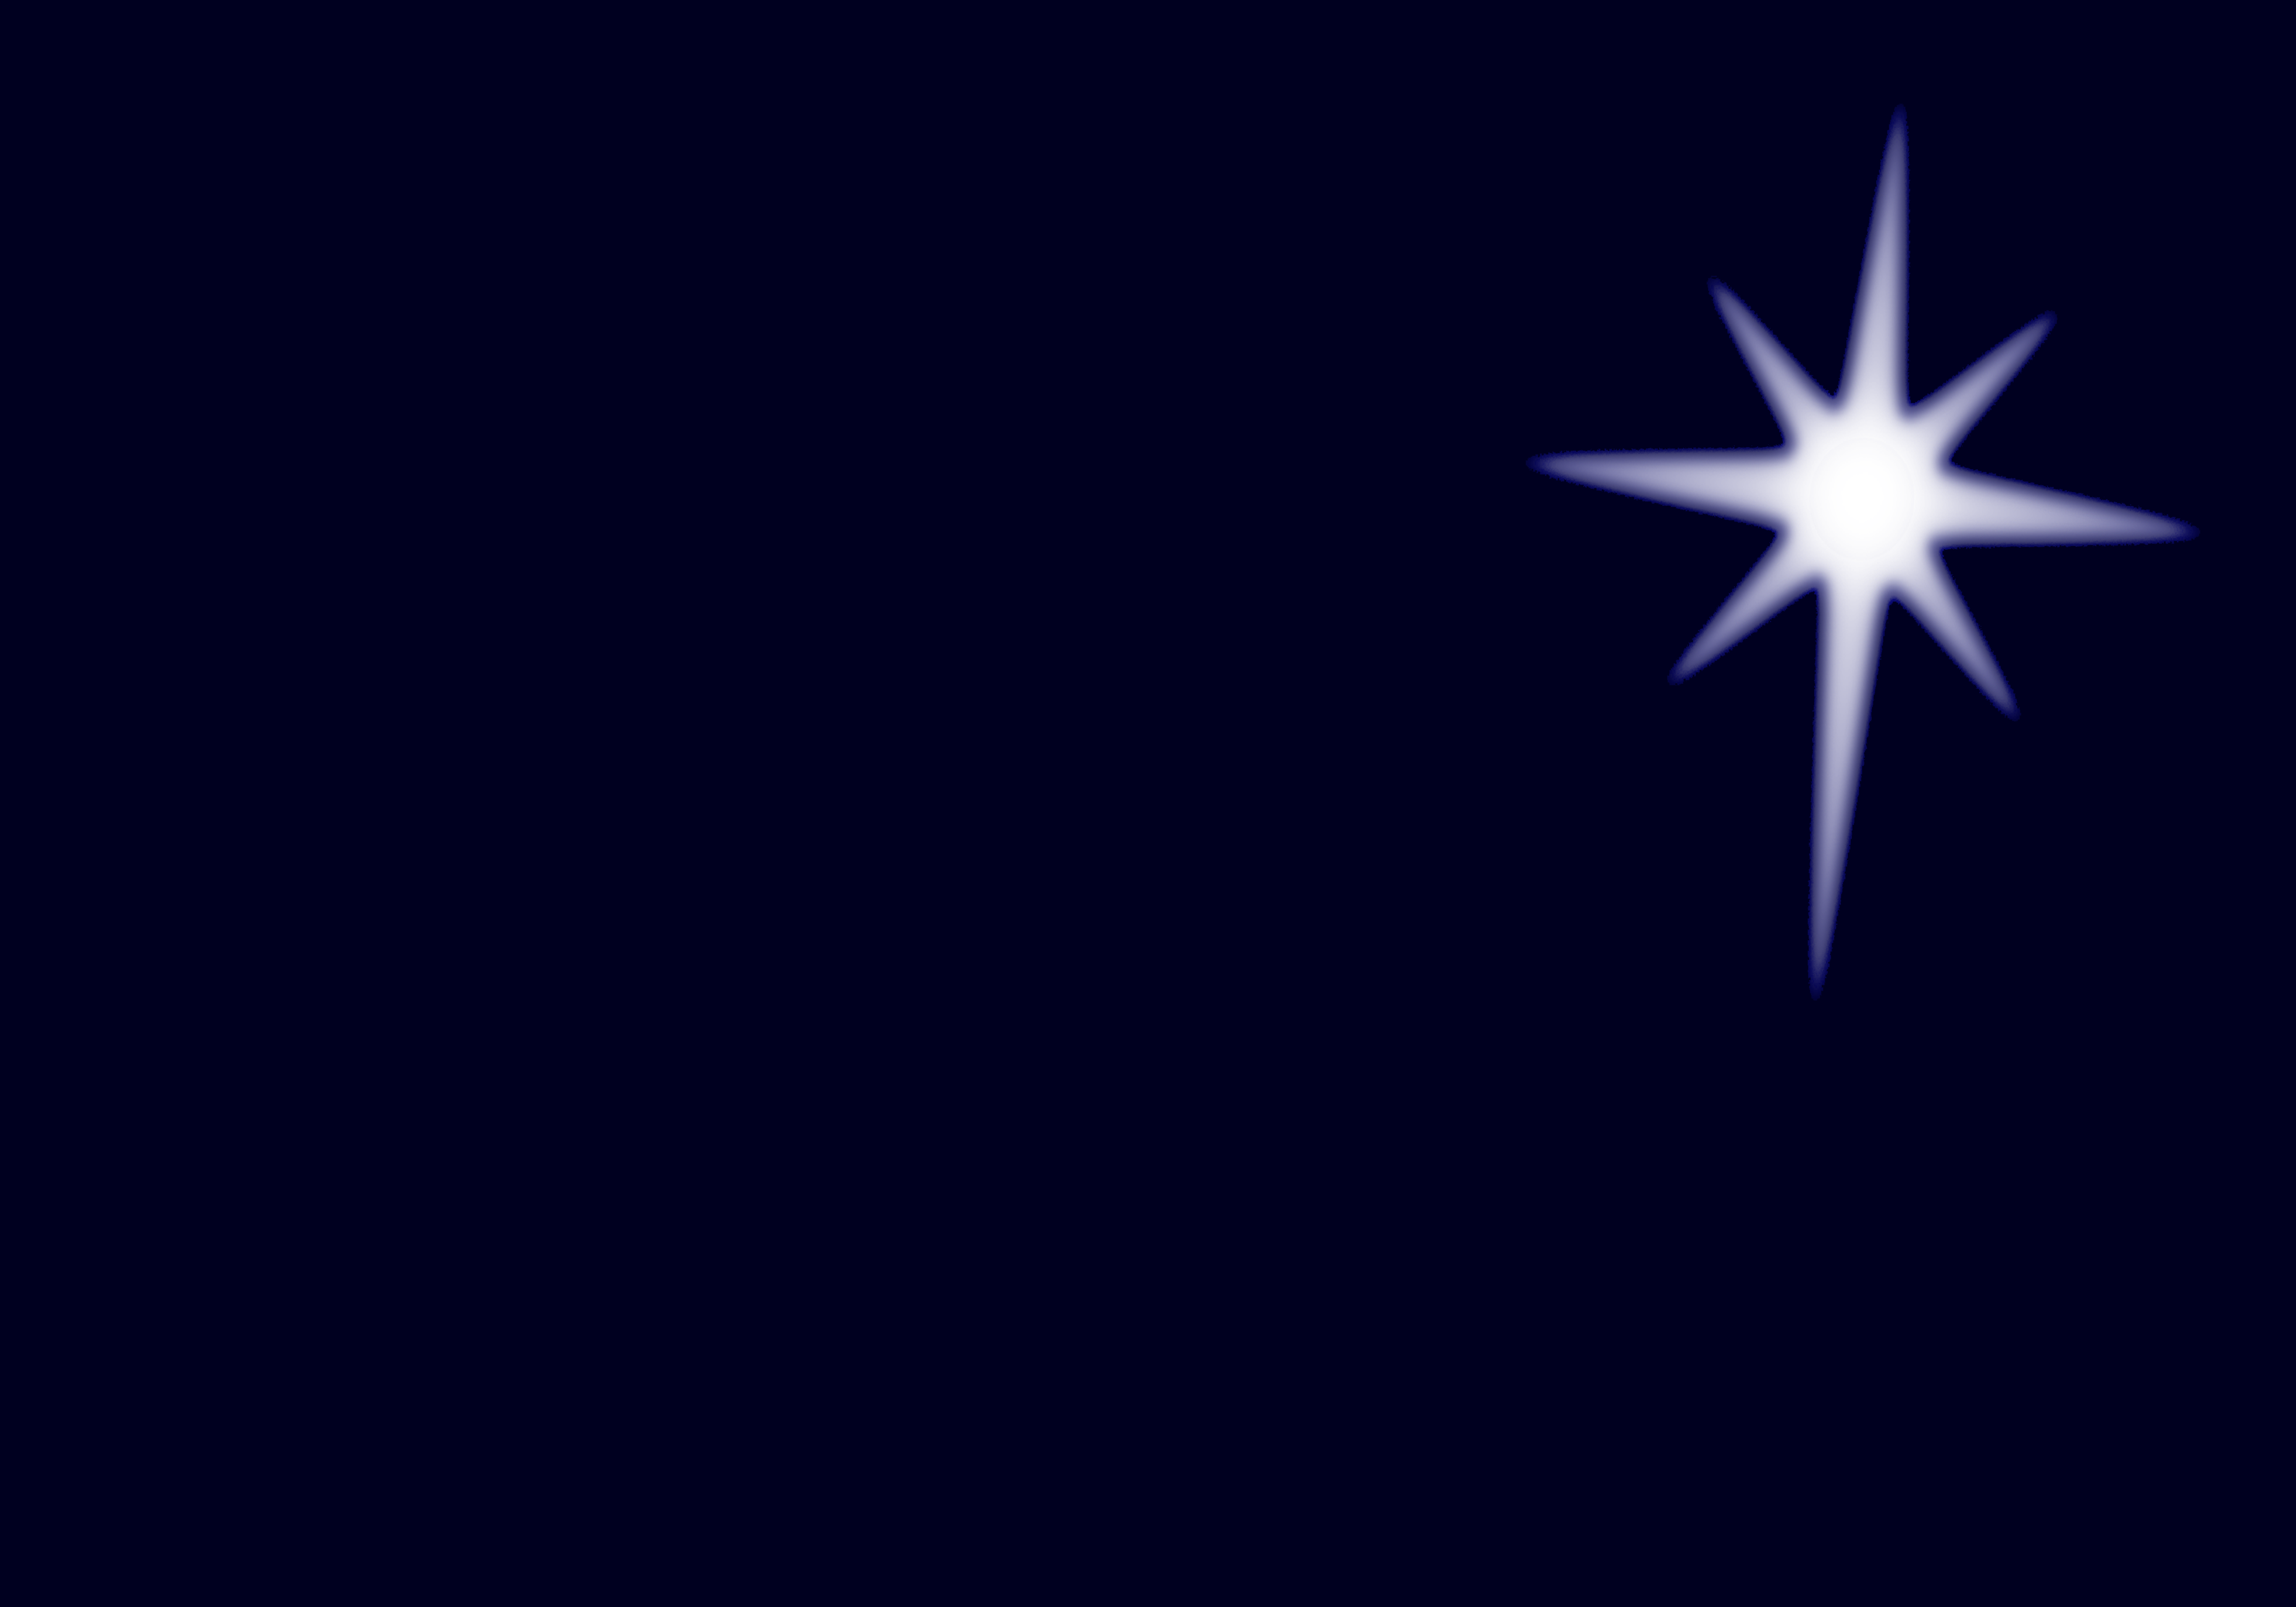 Download Christmas Star Latest Version 2018 5000x3500, Christmas Star HD PNG Download